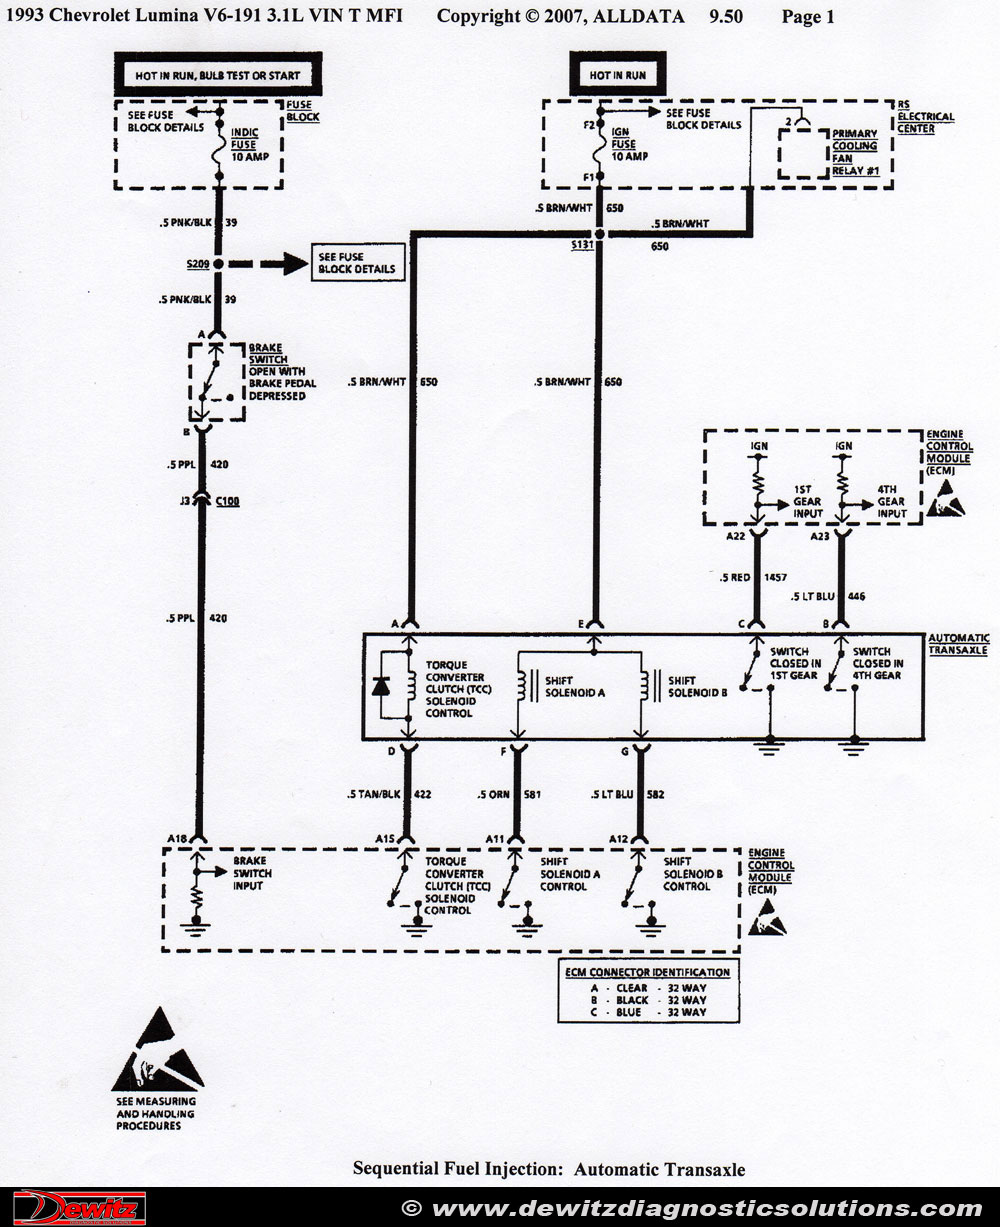 1993 Gmc Transmission Diagram Wiring Online 1997 Jeep Wrangler Fuel Pump 4t60e Explore On The Net U2022 Hydra Matic